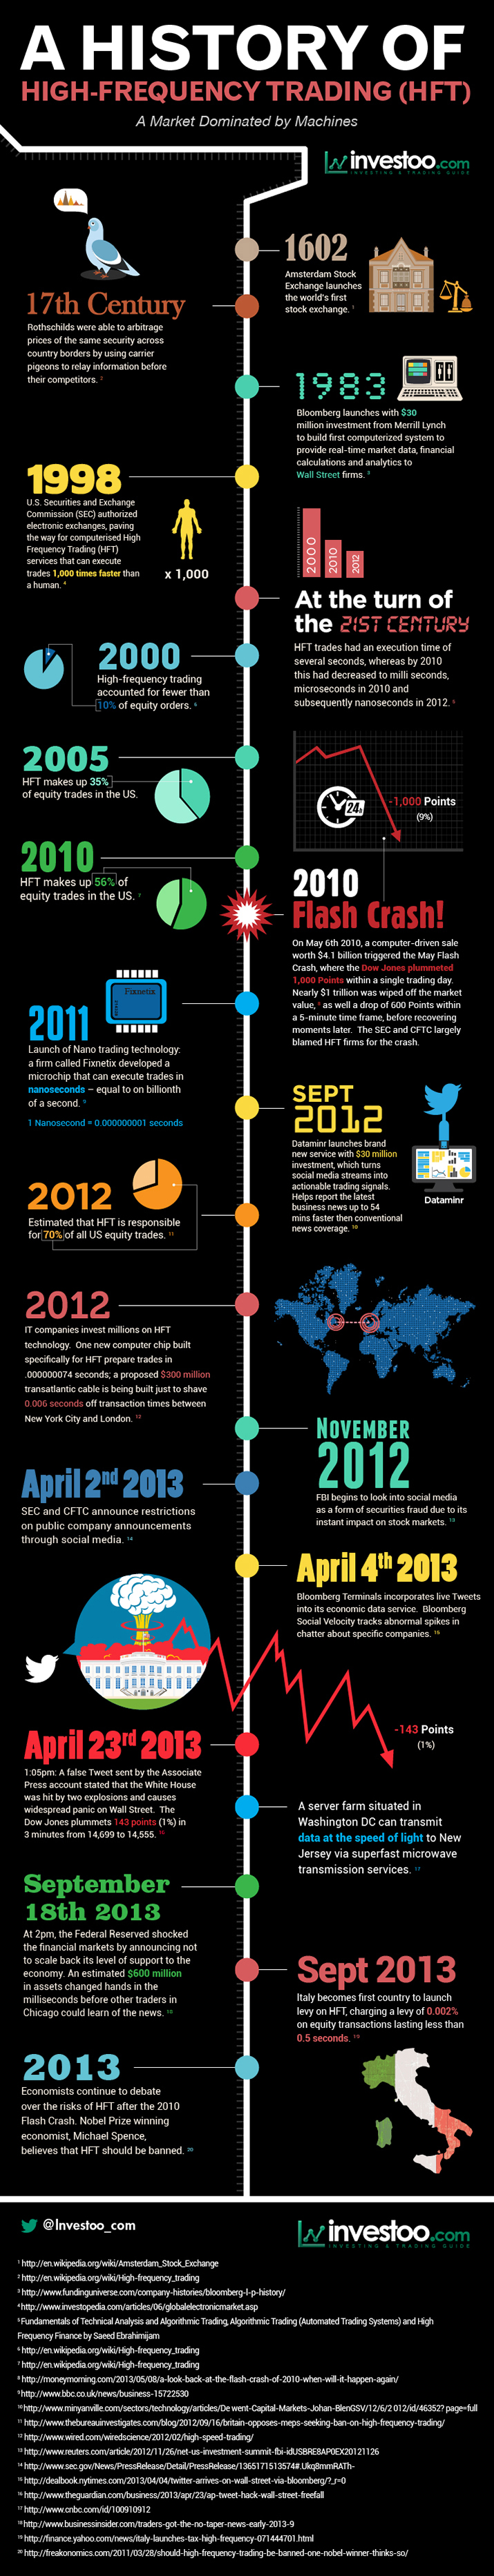 [highfrequency-trading-infographic_525404506b56e]